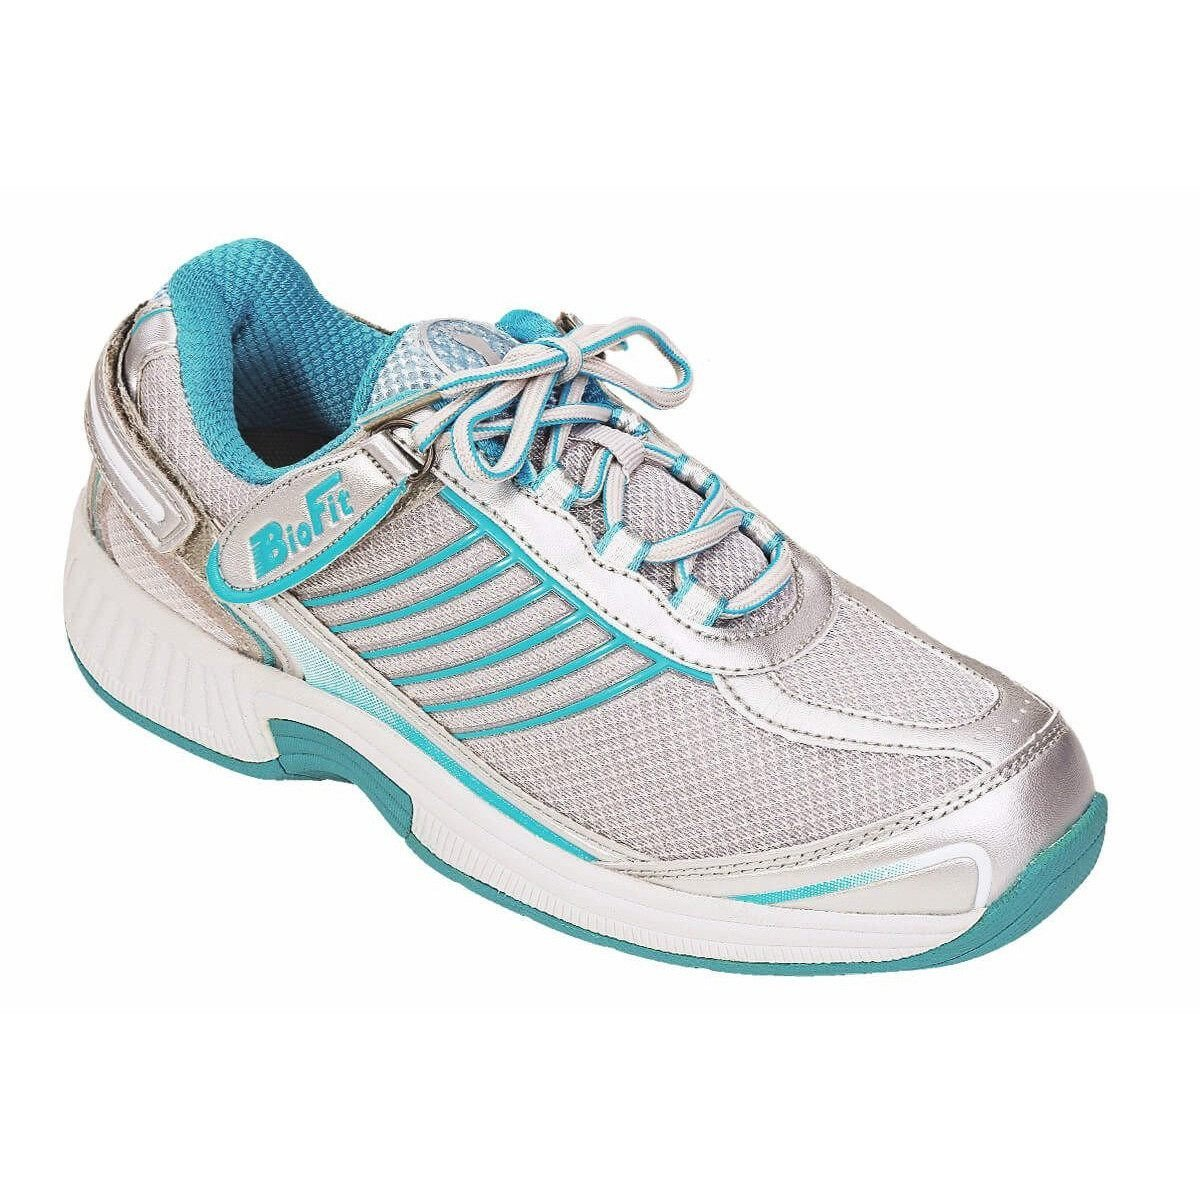 Orthofeet Most Comfortable Plantar Fasciitis Verve Orthopedic Diabetic Athletic Shoes for Women B00VQJD254 10.5 B(M) US|Turquoise